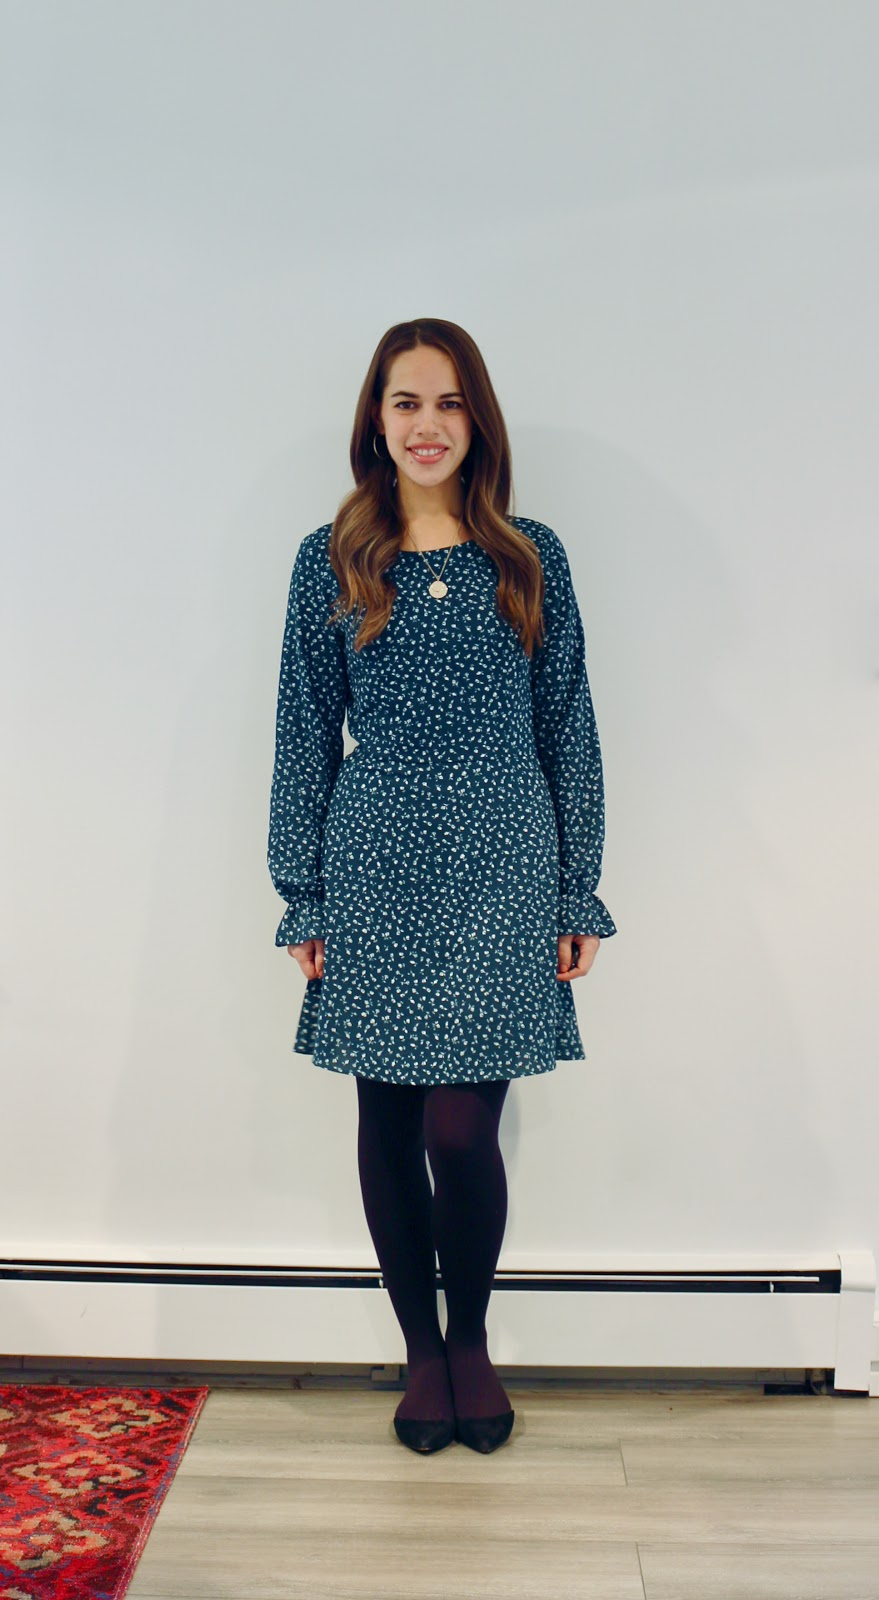 Jules in Flats - H&M Creped Dress (Business Casual Fall Workwear on a Budget)